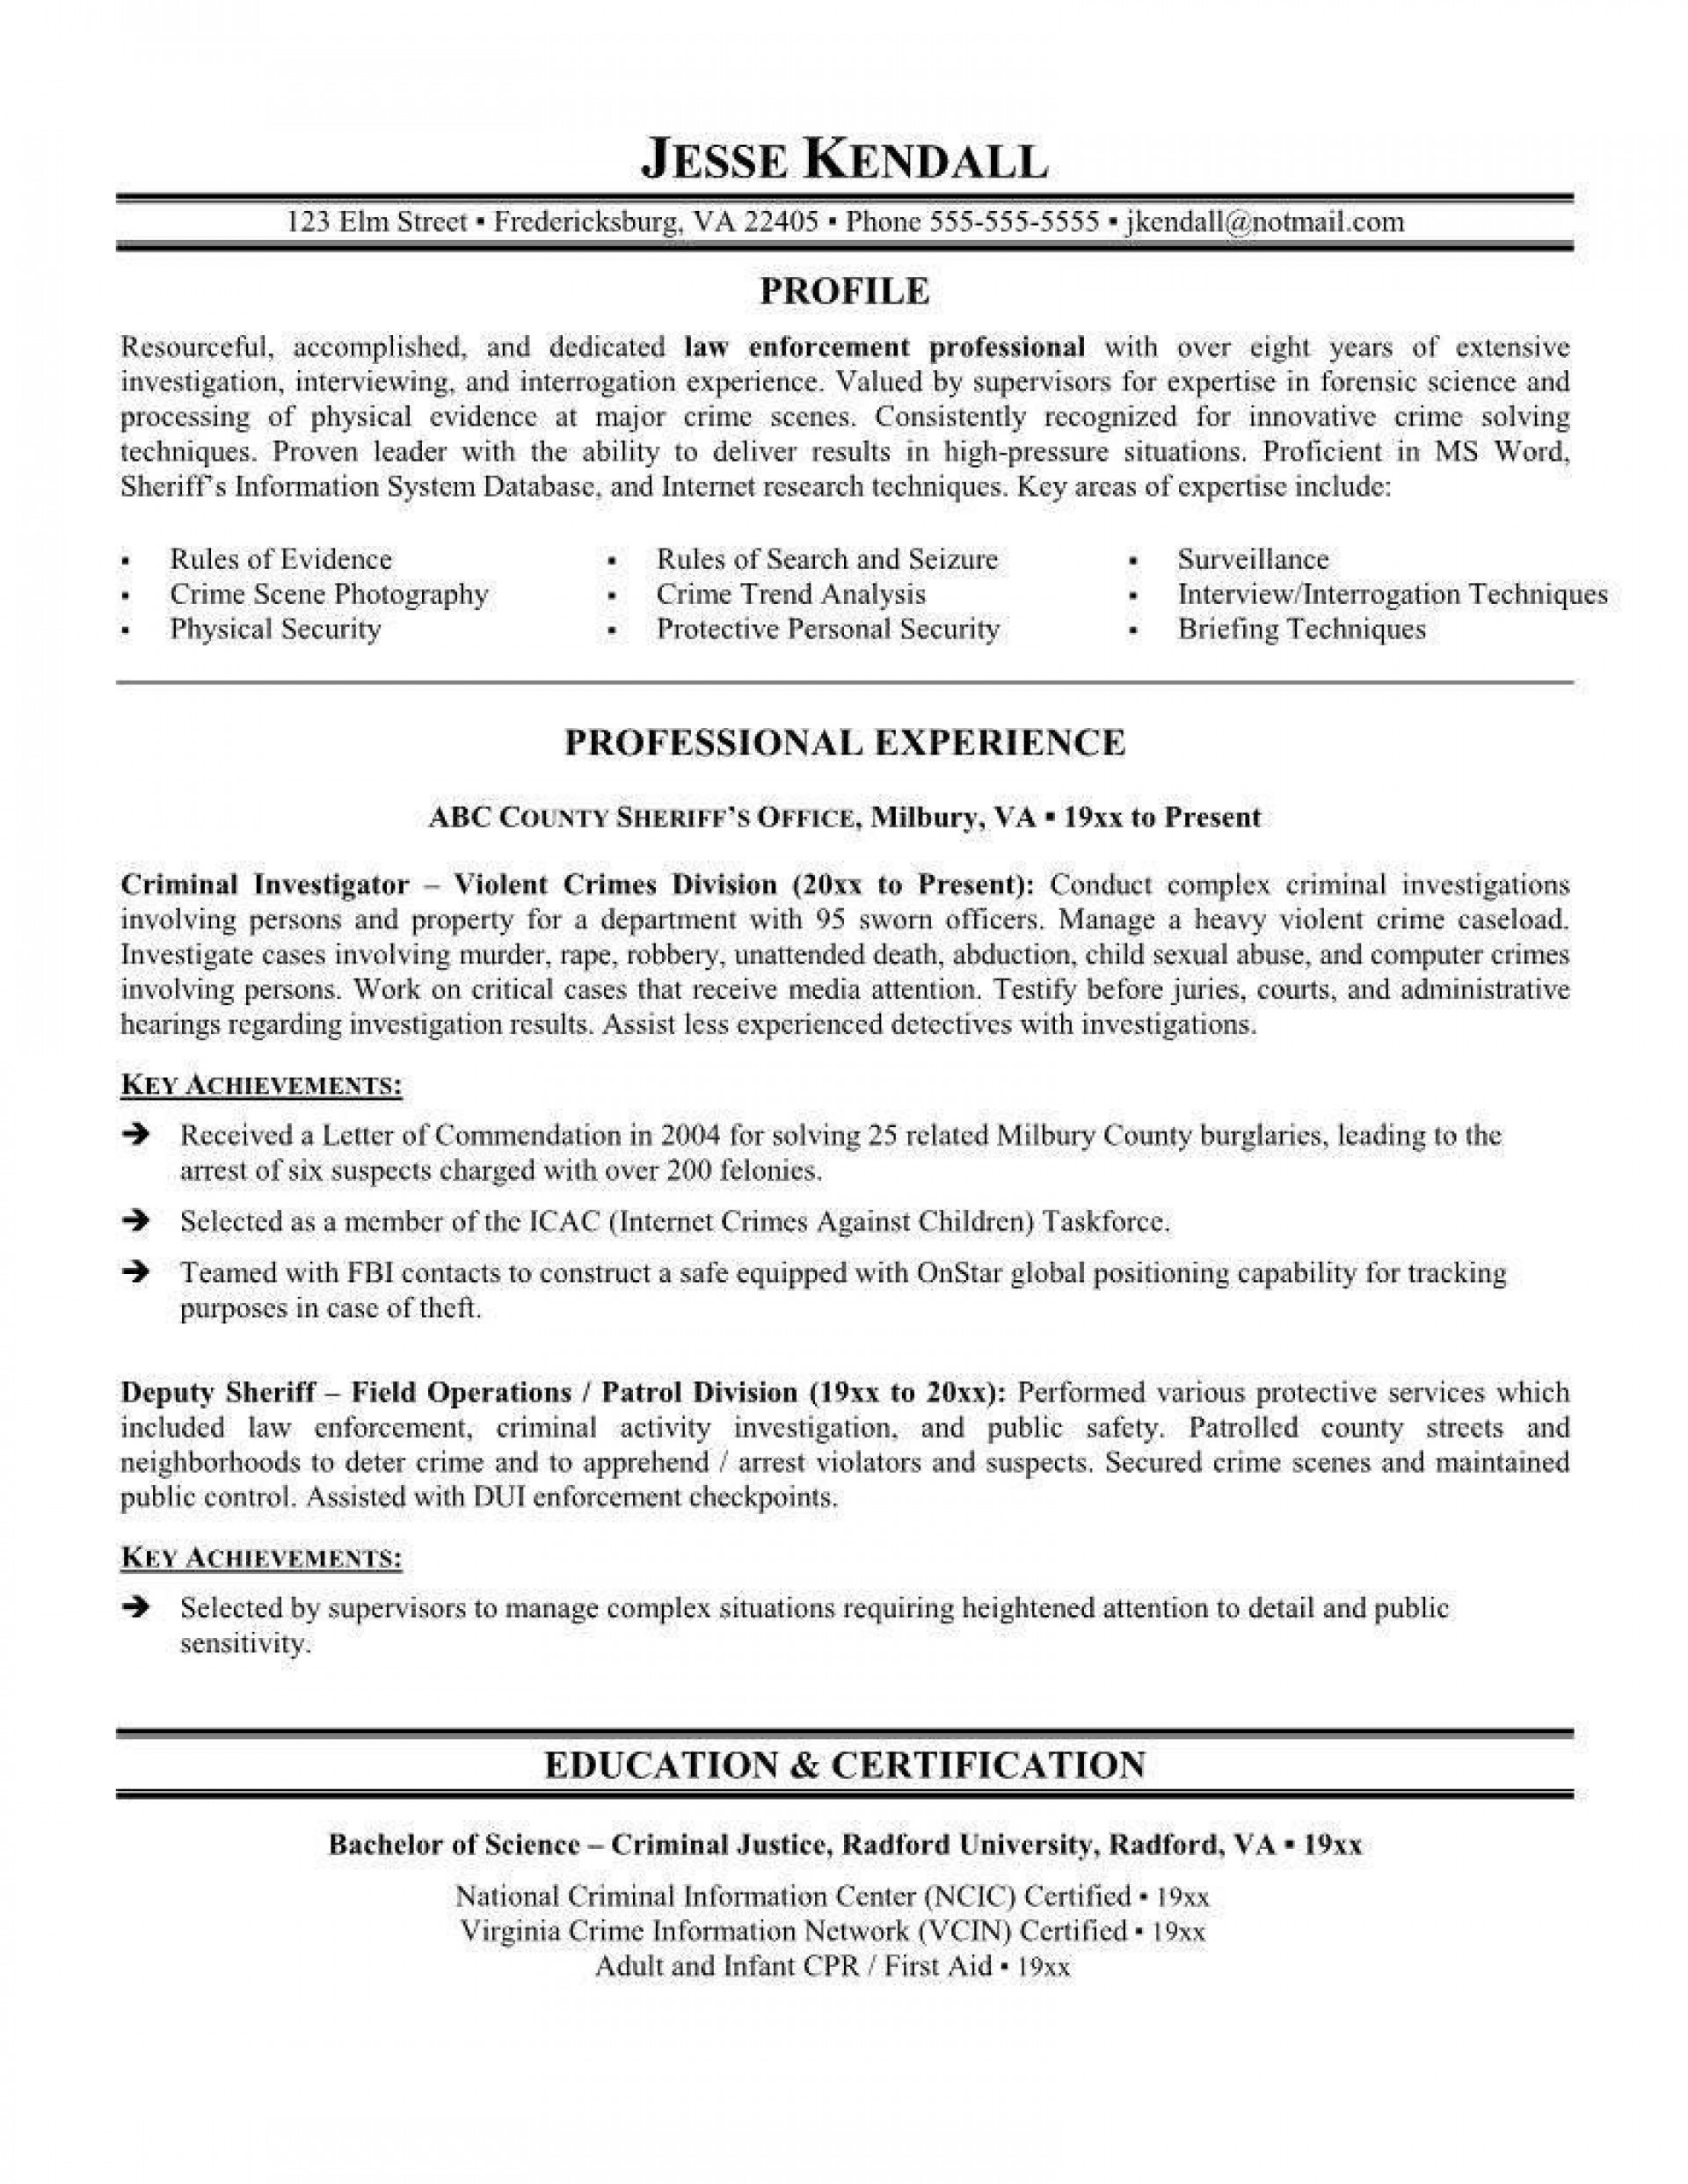 002 Wondrou Law Enforcement Resume Template Highest Clarity  Federal Promotion1920